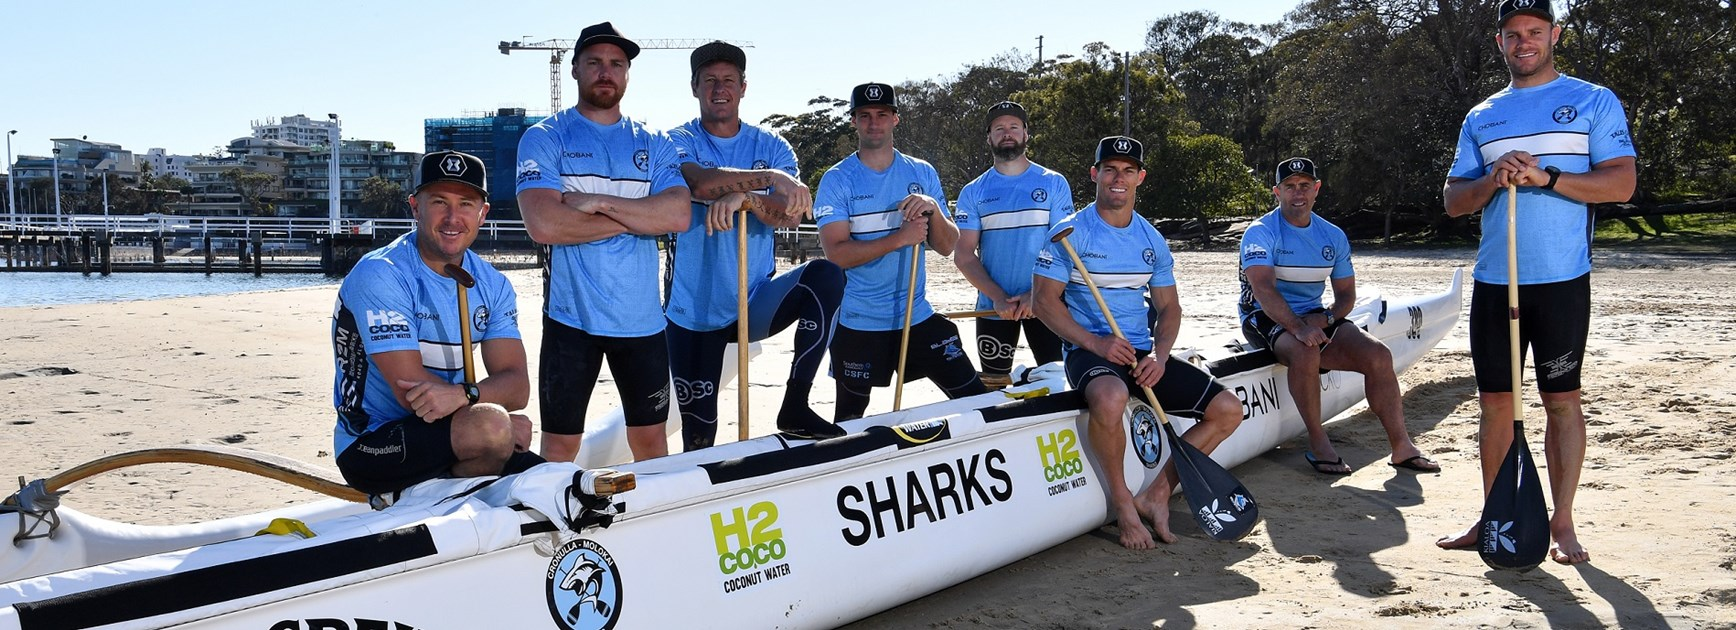 Sharks Paddle Power